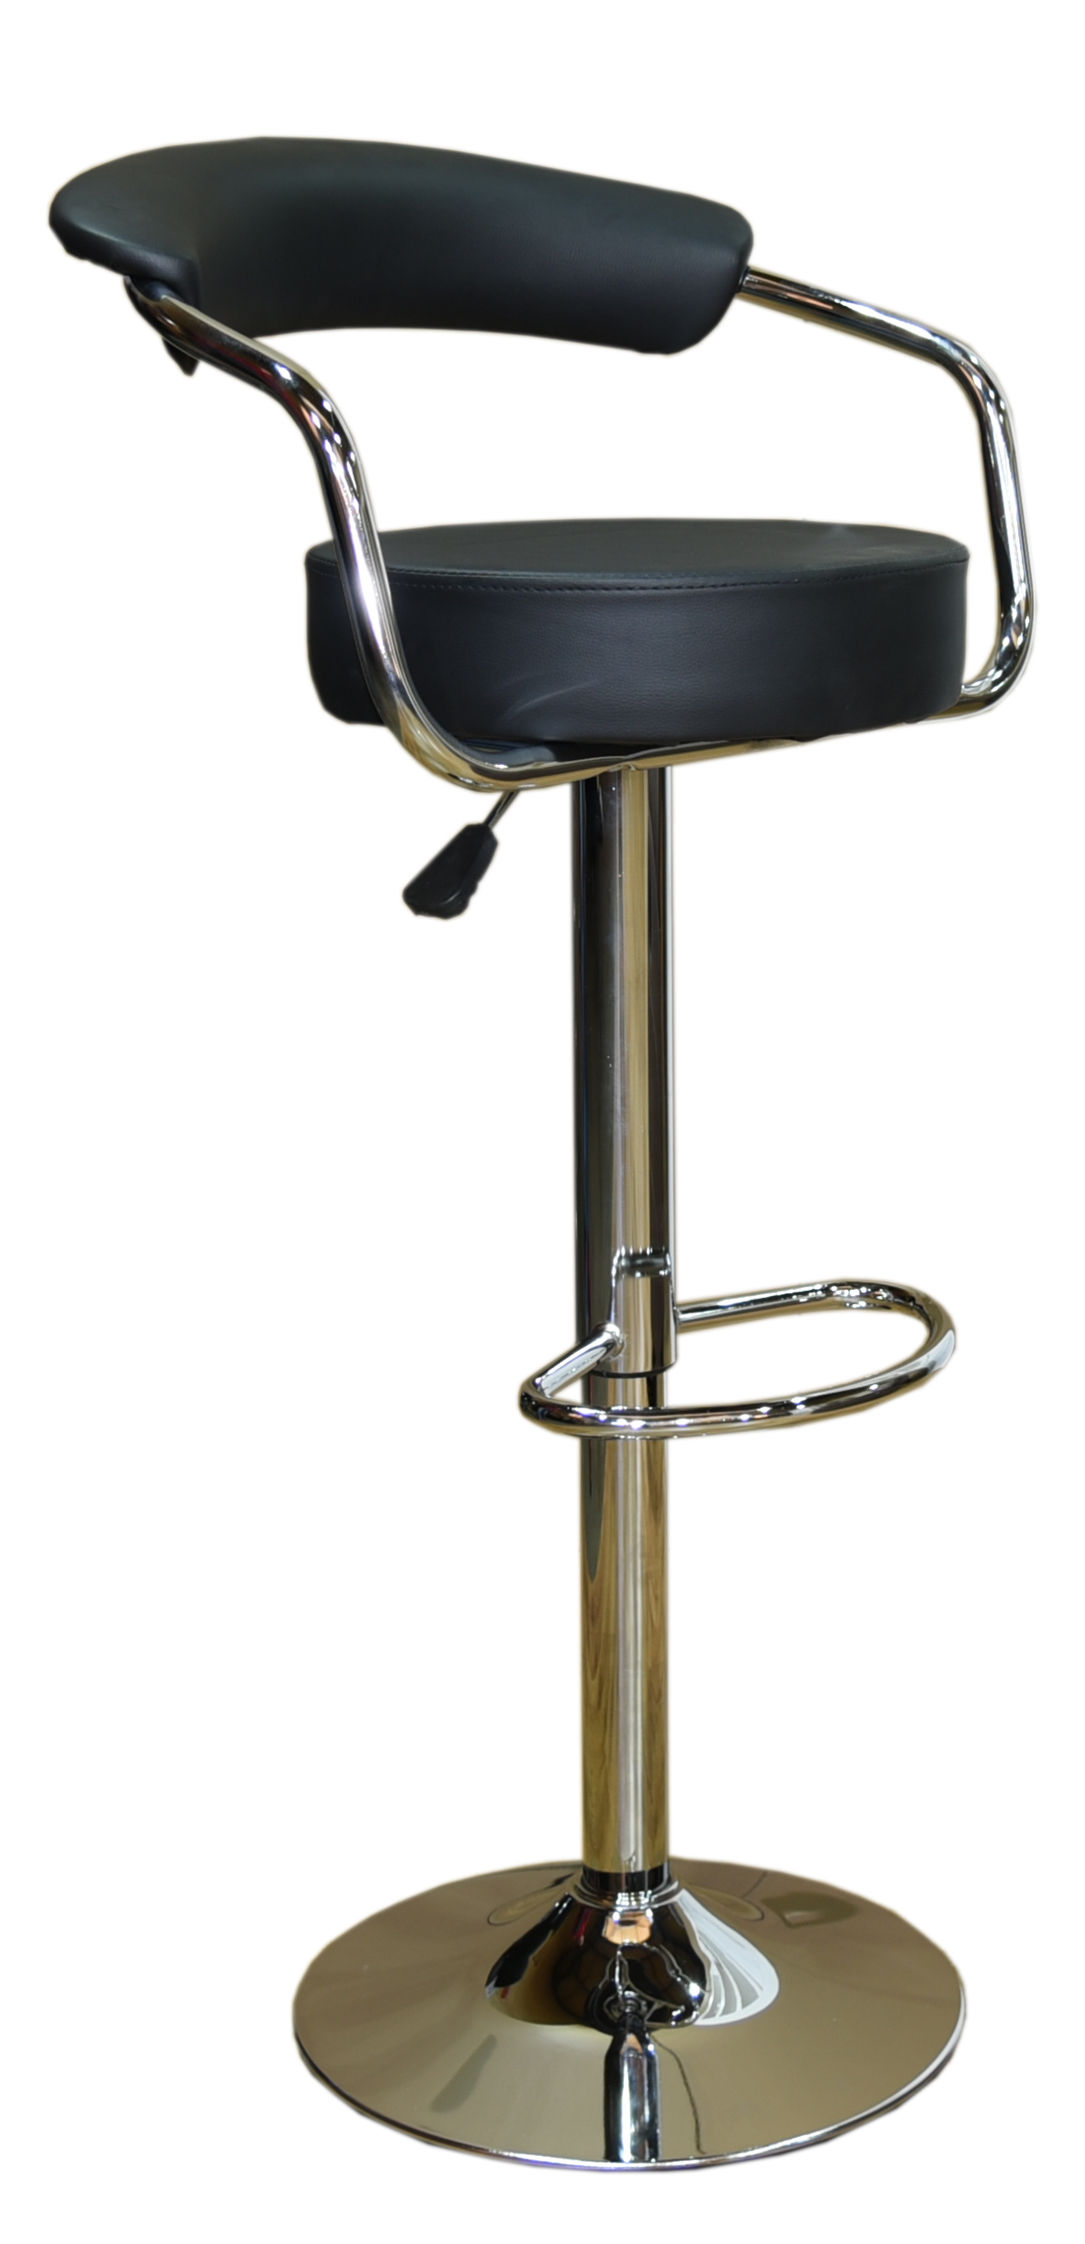 682 bar stool bat stools for sale stool bar online for Bar stools for sale